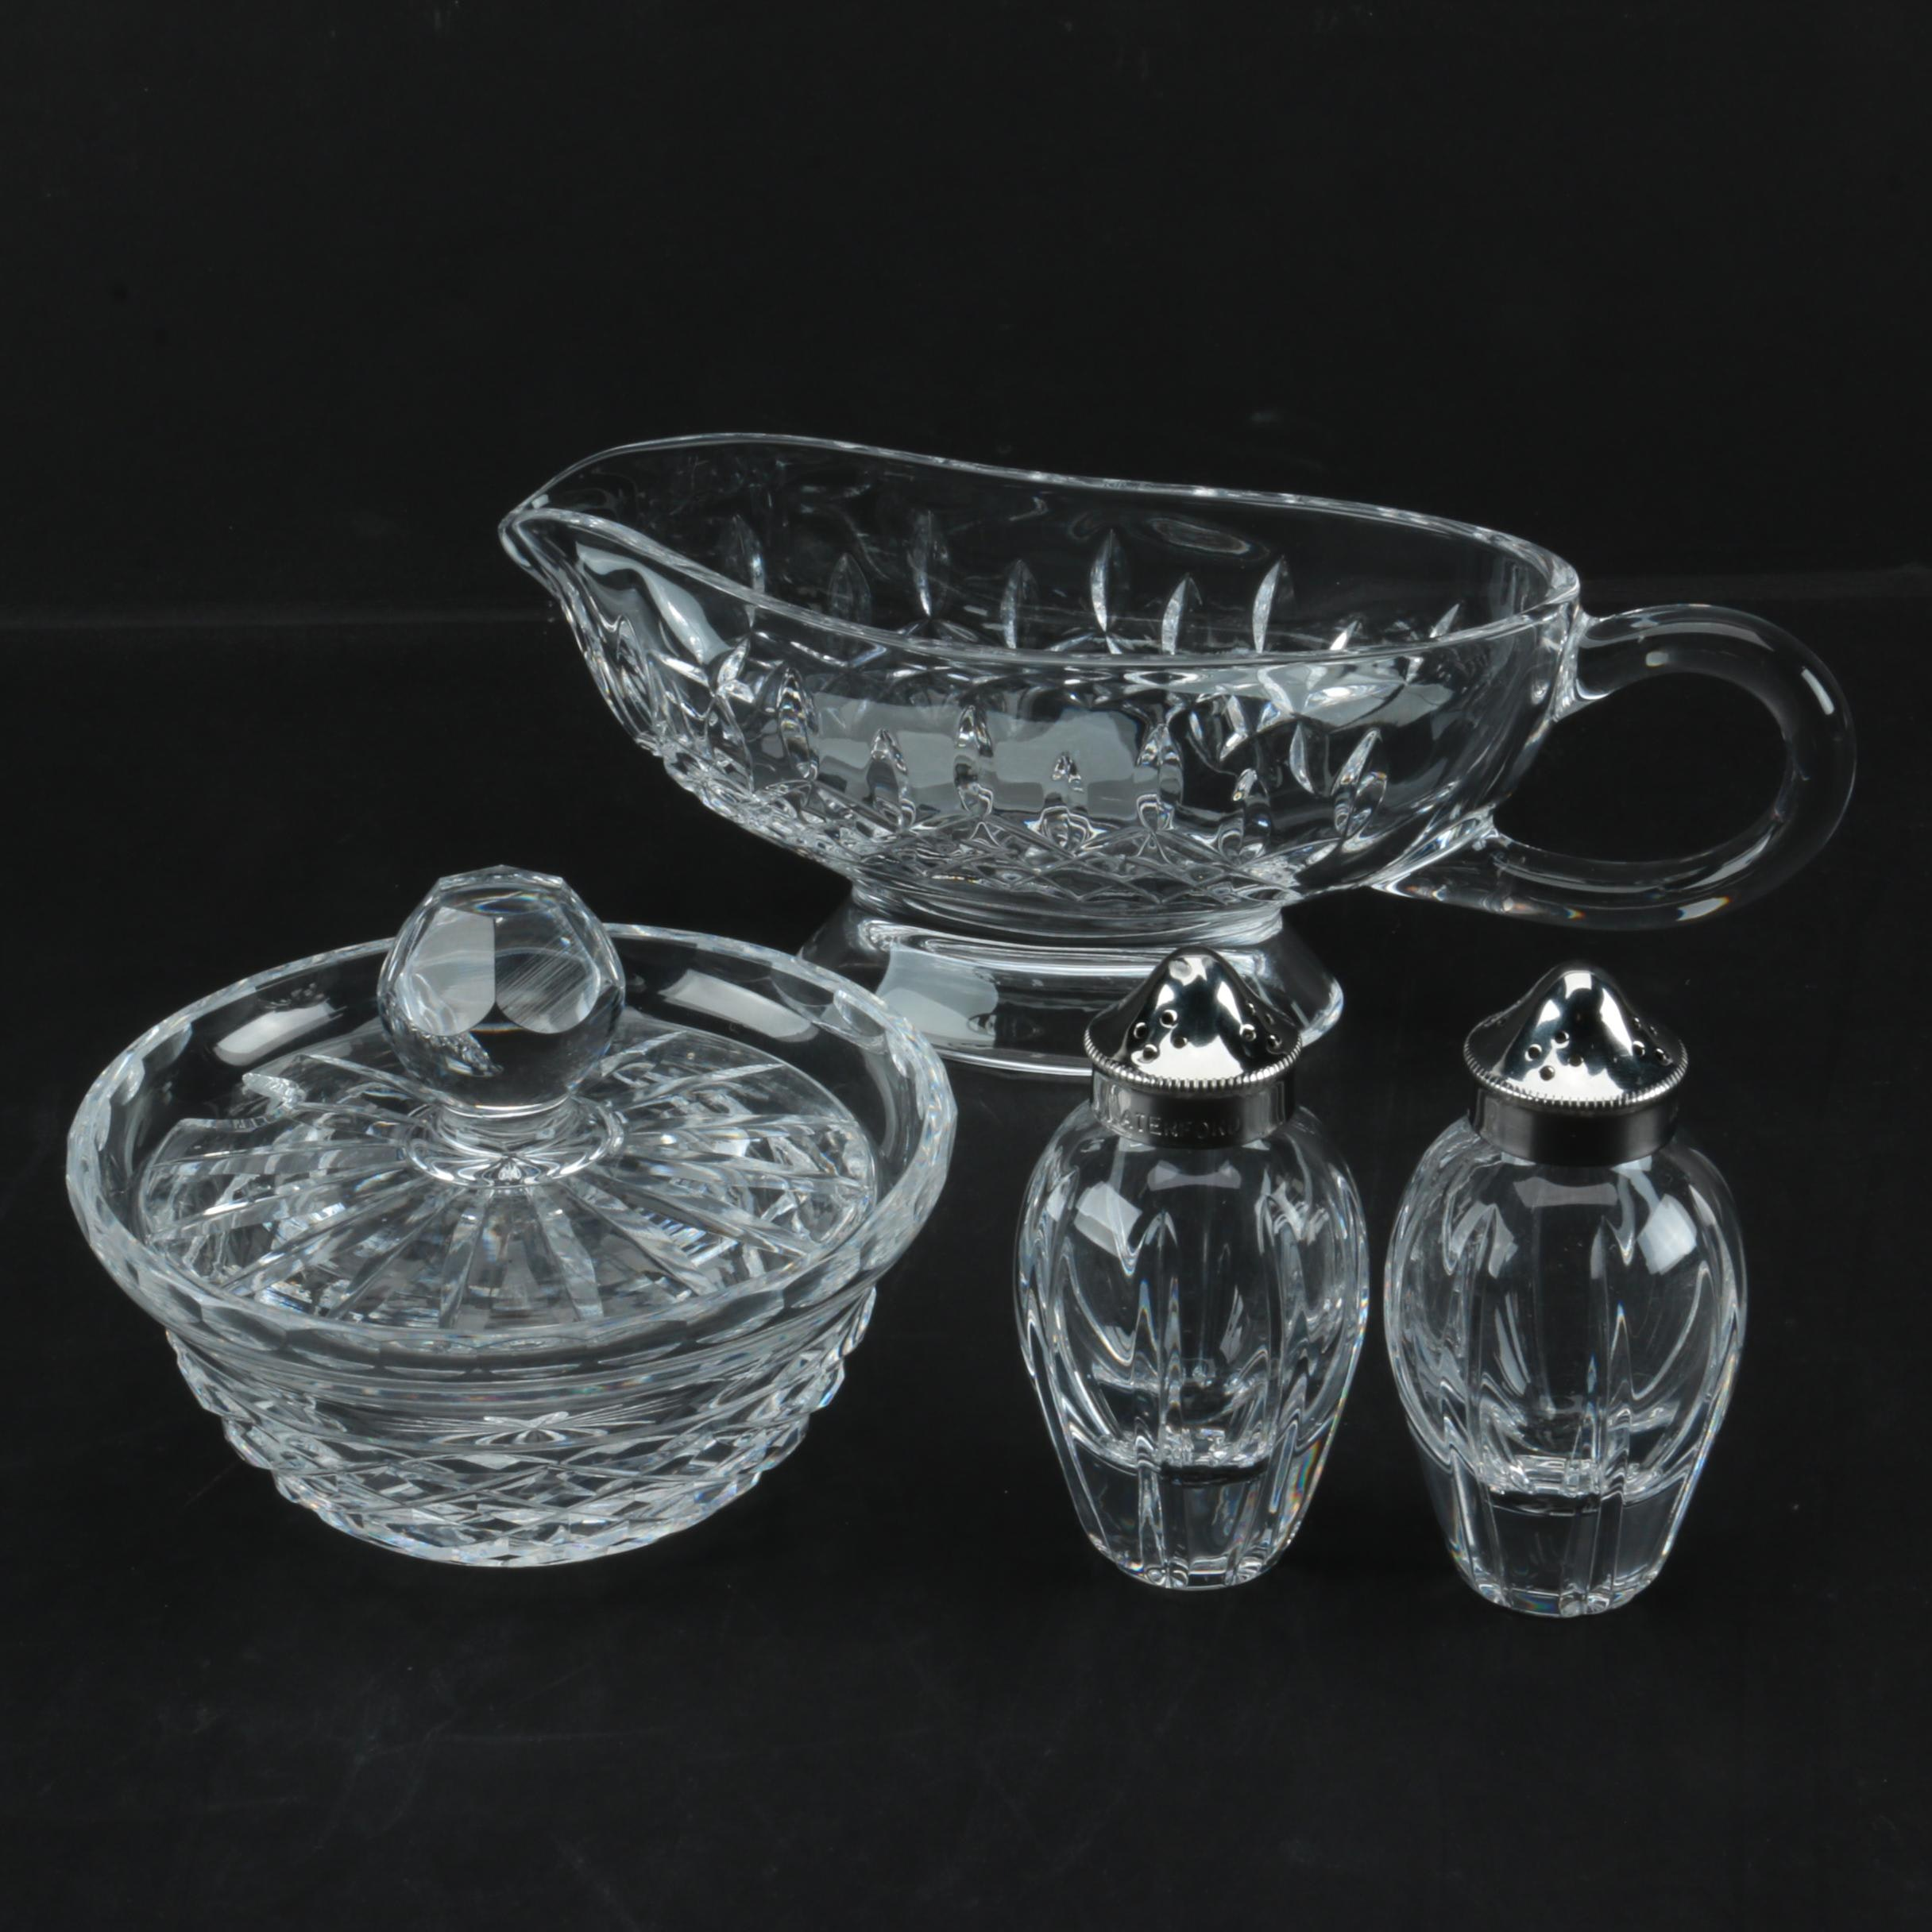 Waterford Crystal Serveware